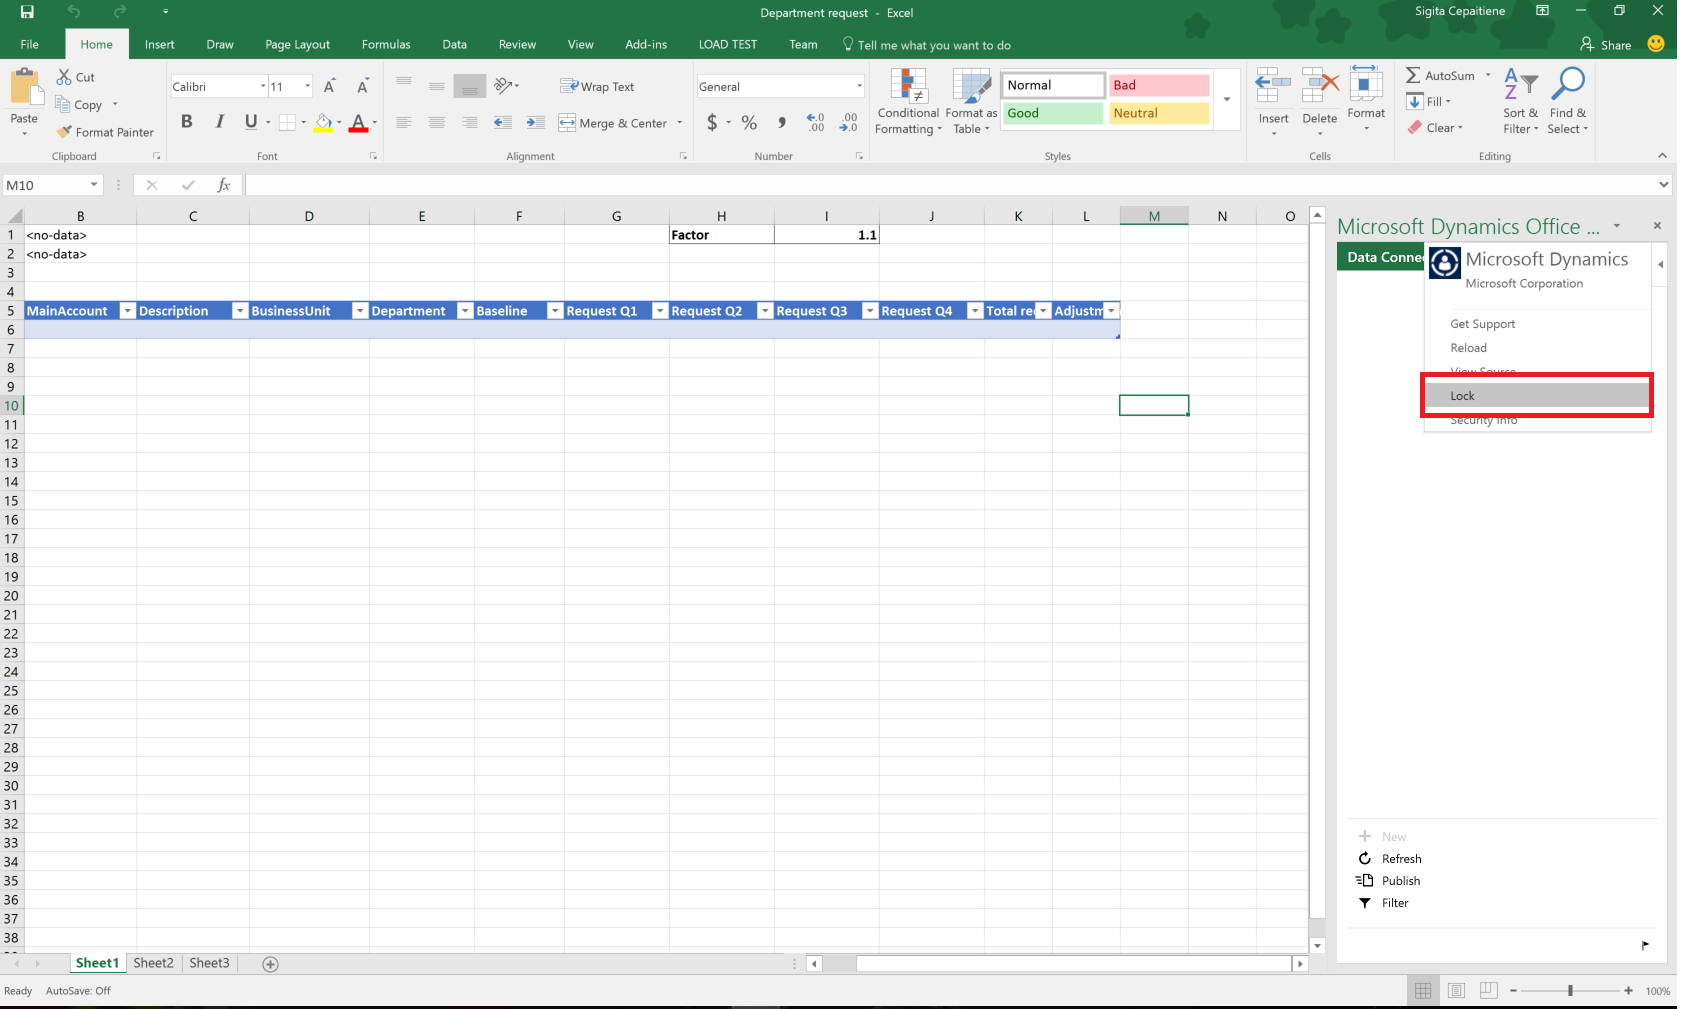 Budget Planning Templates For Excel   Finance & Operations Intended For Budget Plan Spreadsheet